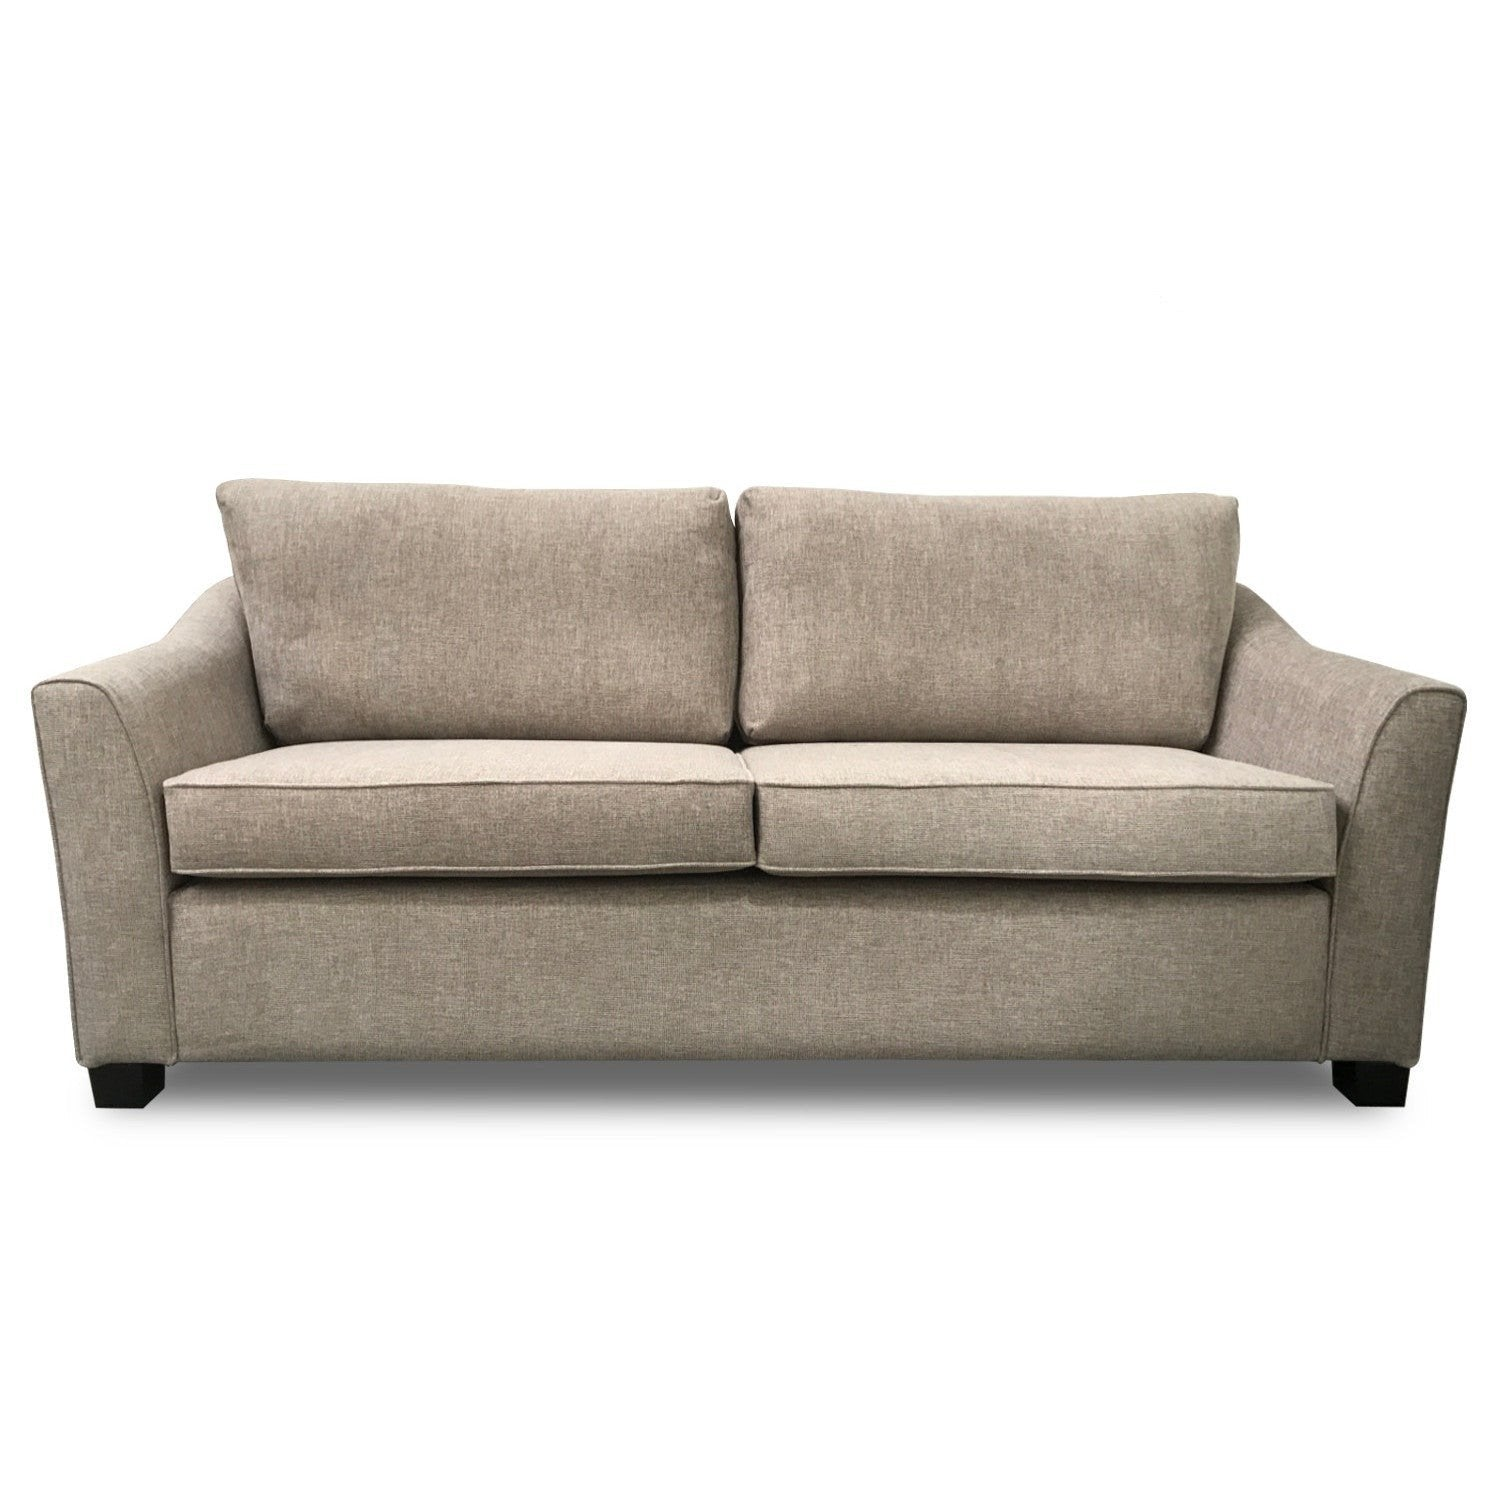 Henly 3 Seater Sofa